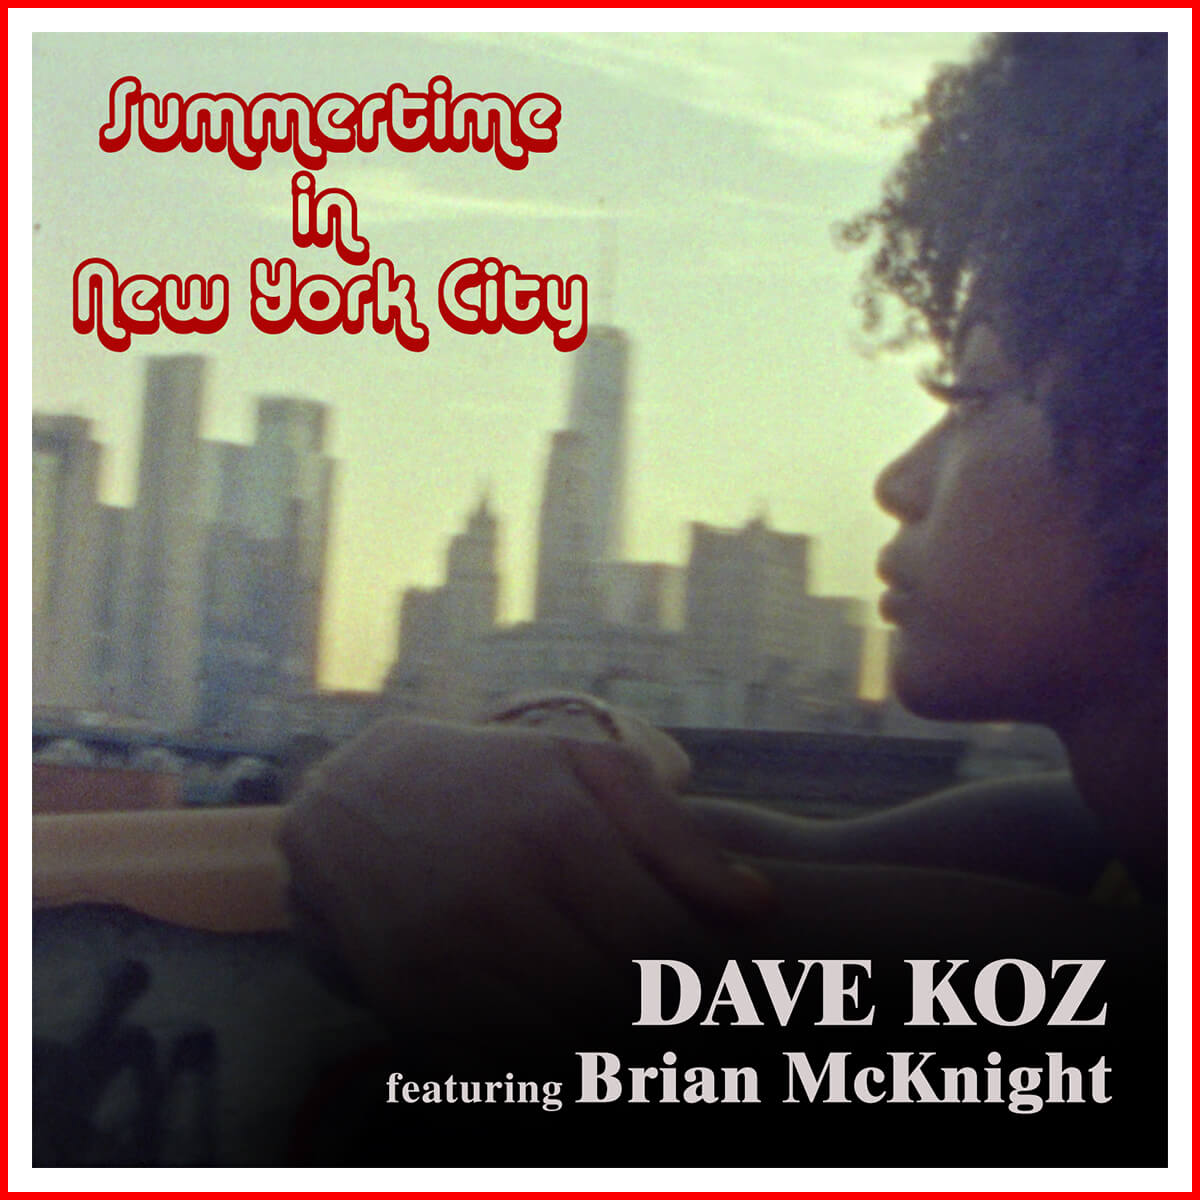 Summertime in NYC featuring Brian McKnight